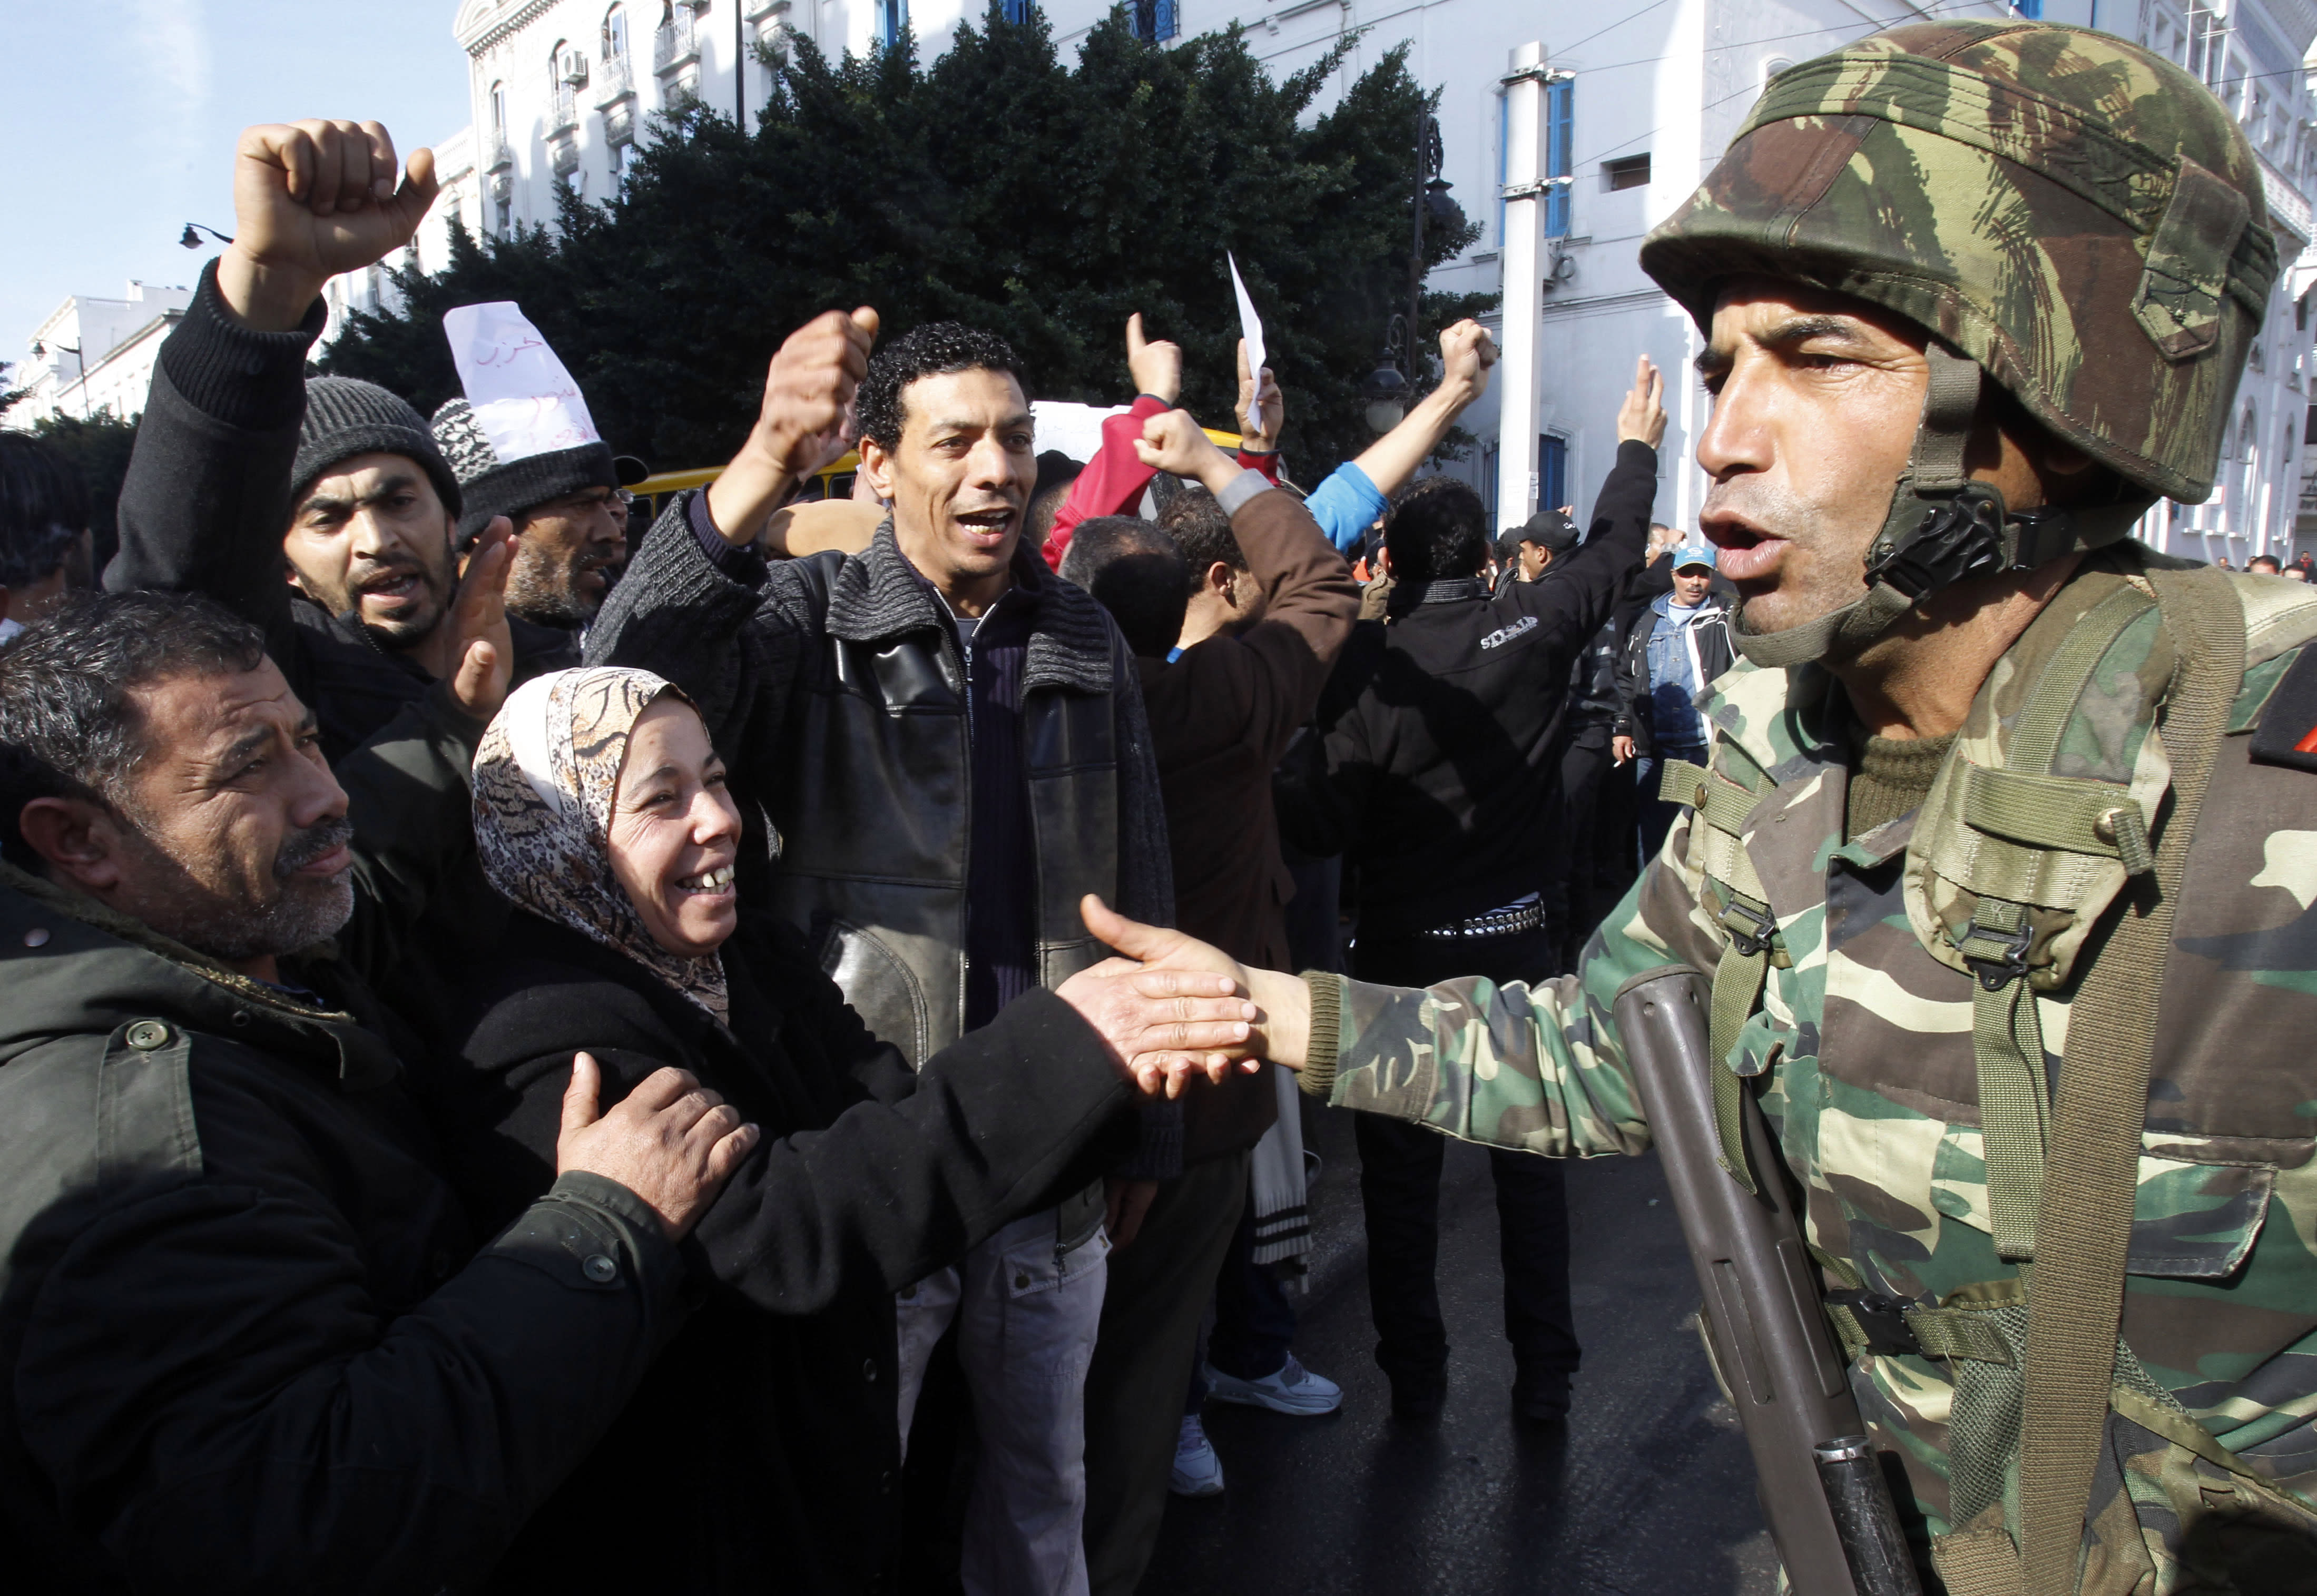 GLANCE: Tunisia, Nobel winner, shines as Arab Spring success